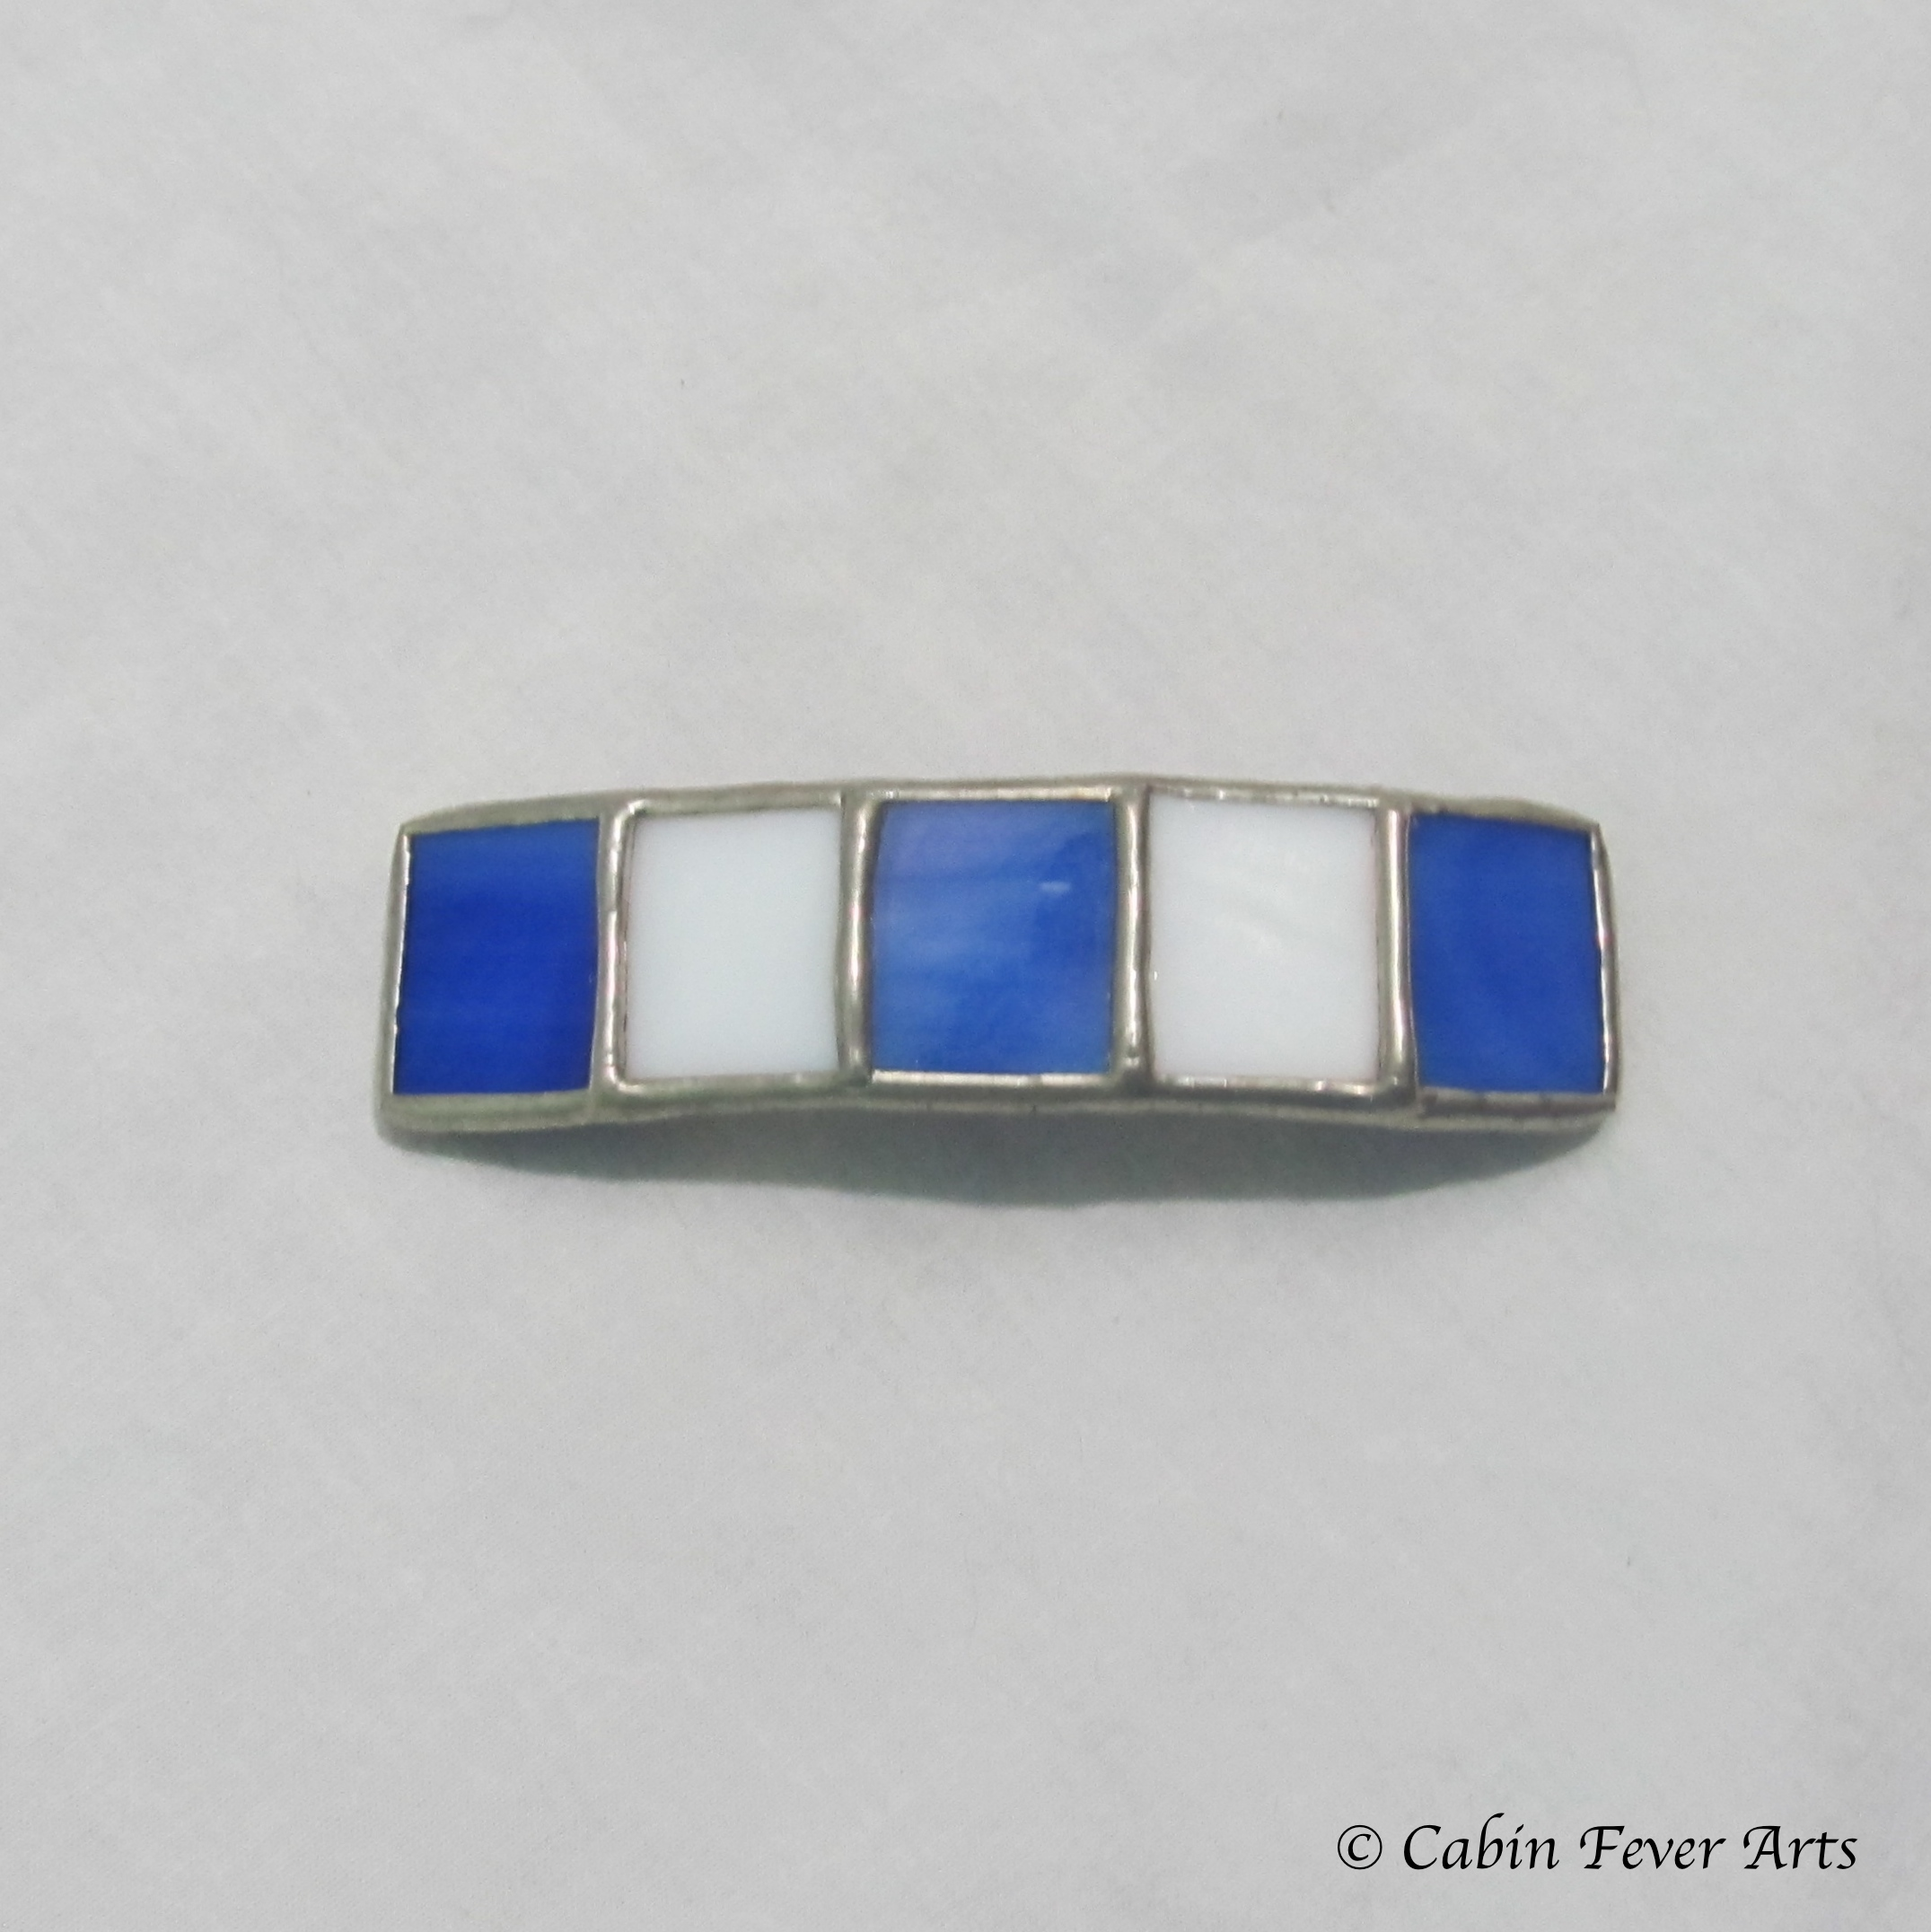 Barrette - Blue/White - 60 mm